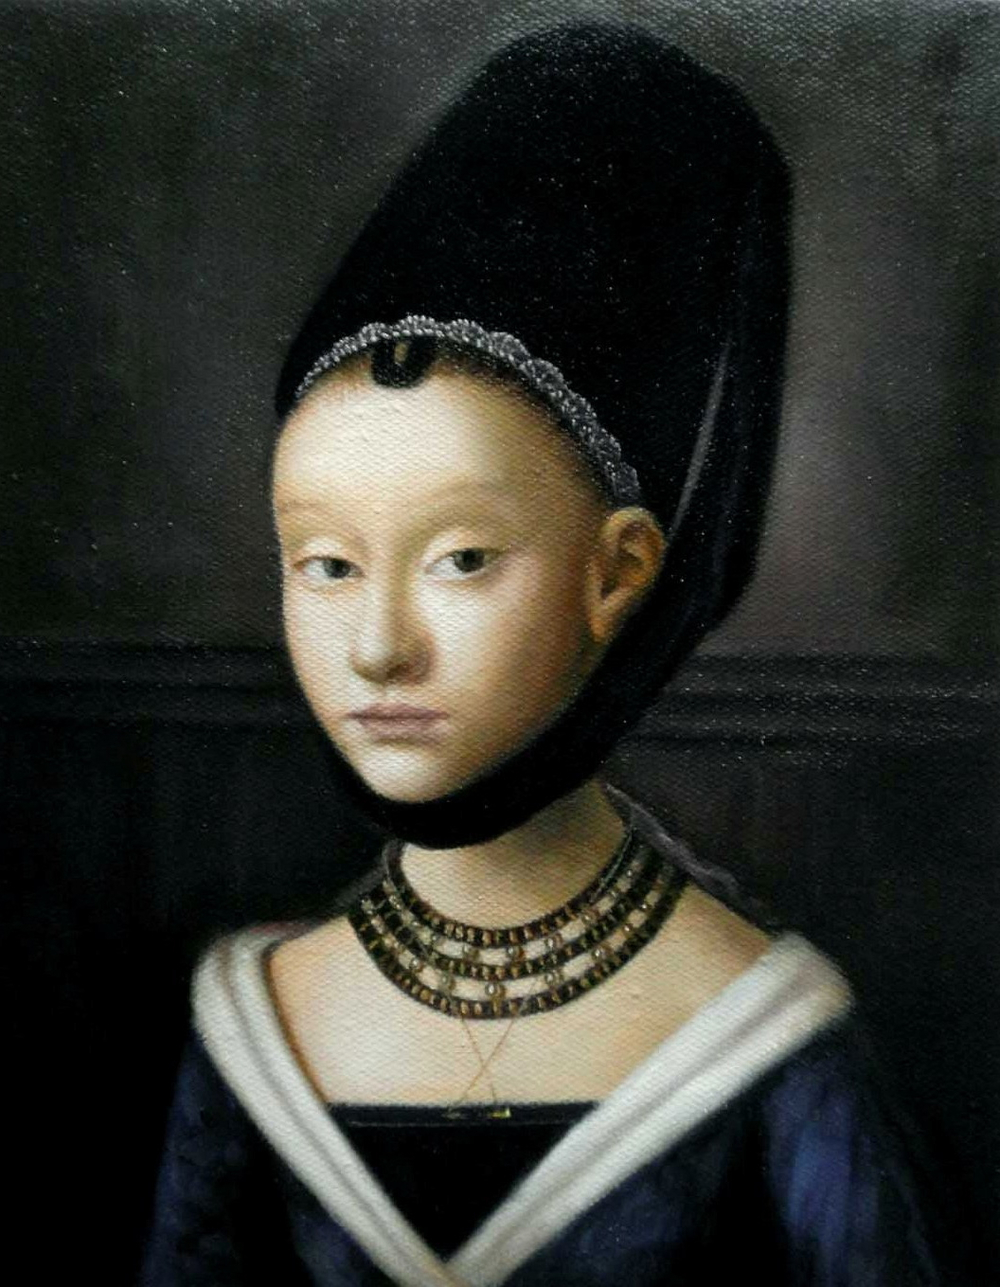 Eleanor's niece, Viscountess Lisle – a copy of the portrait by Petrus Christus, owned by John Ashdown-Hill